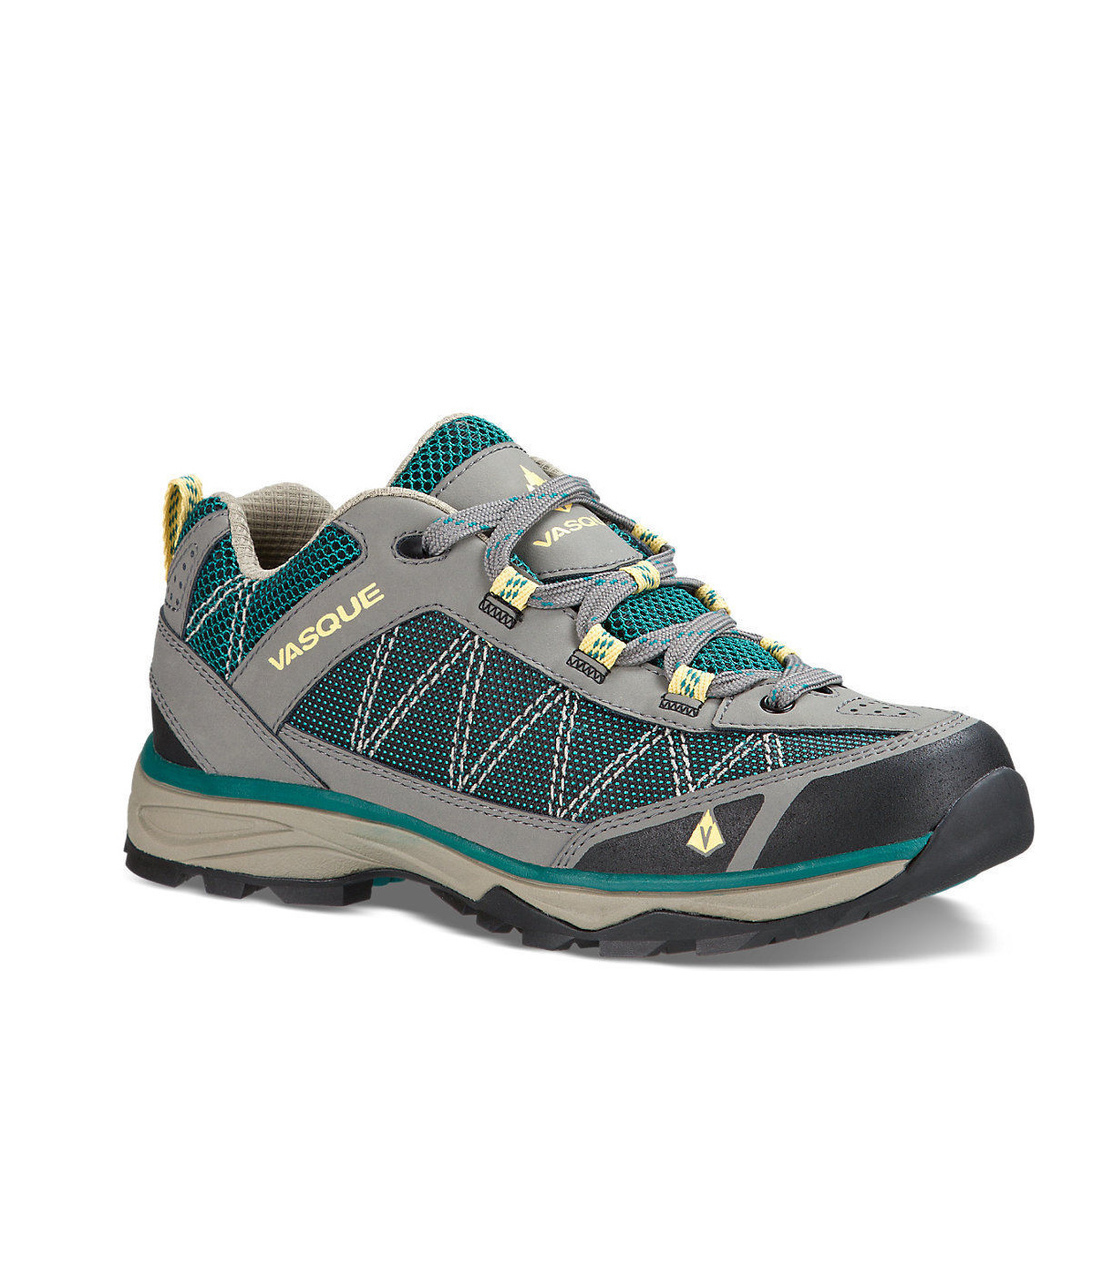 vasque monolith low everglade hiking shoes price breaker